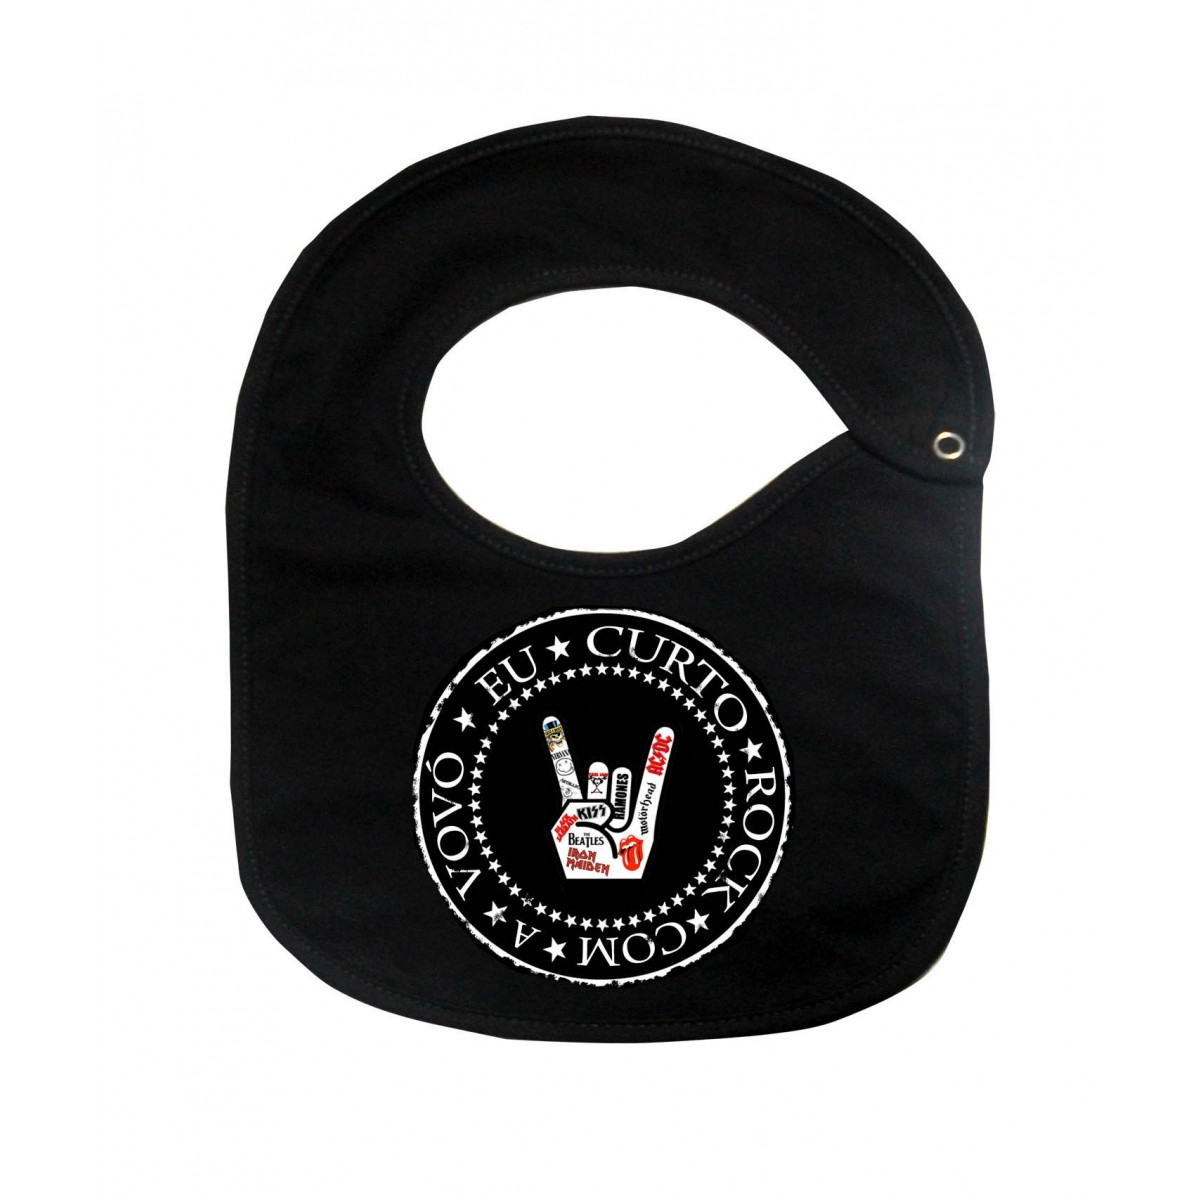 Babador  Rock Baby  - Eu curto rock com a Vovó - Black  - Baby Monster S/A